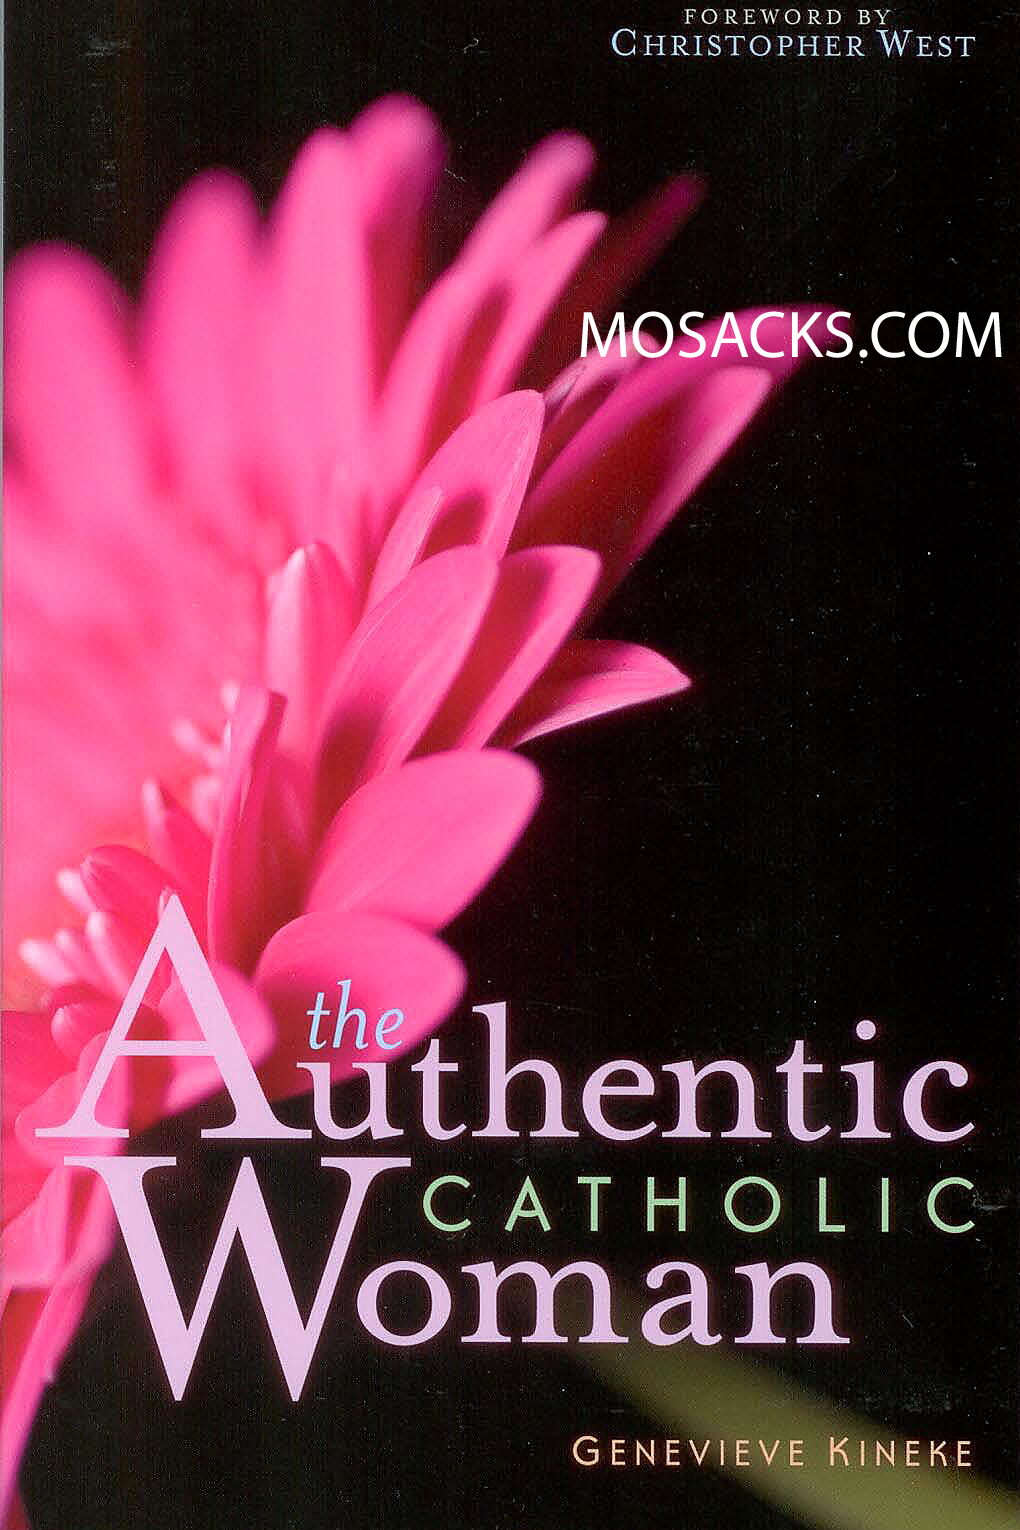 The Authentic Catholic Woman by Genevieve Kineke